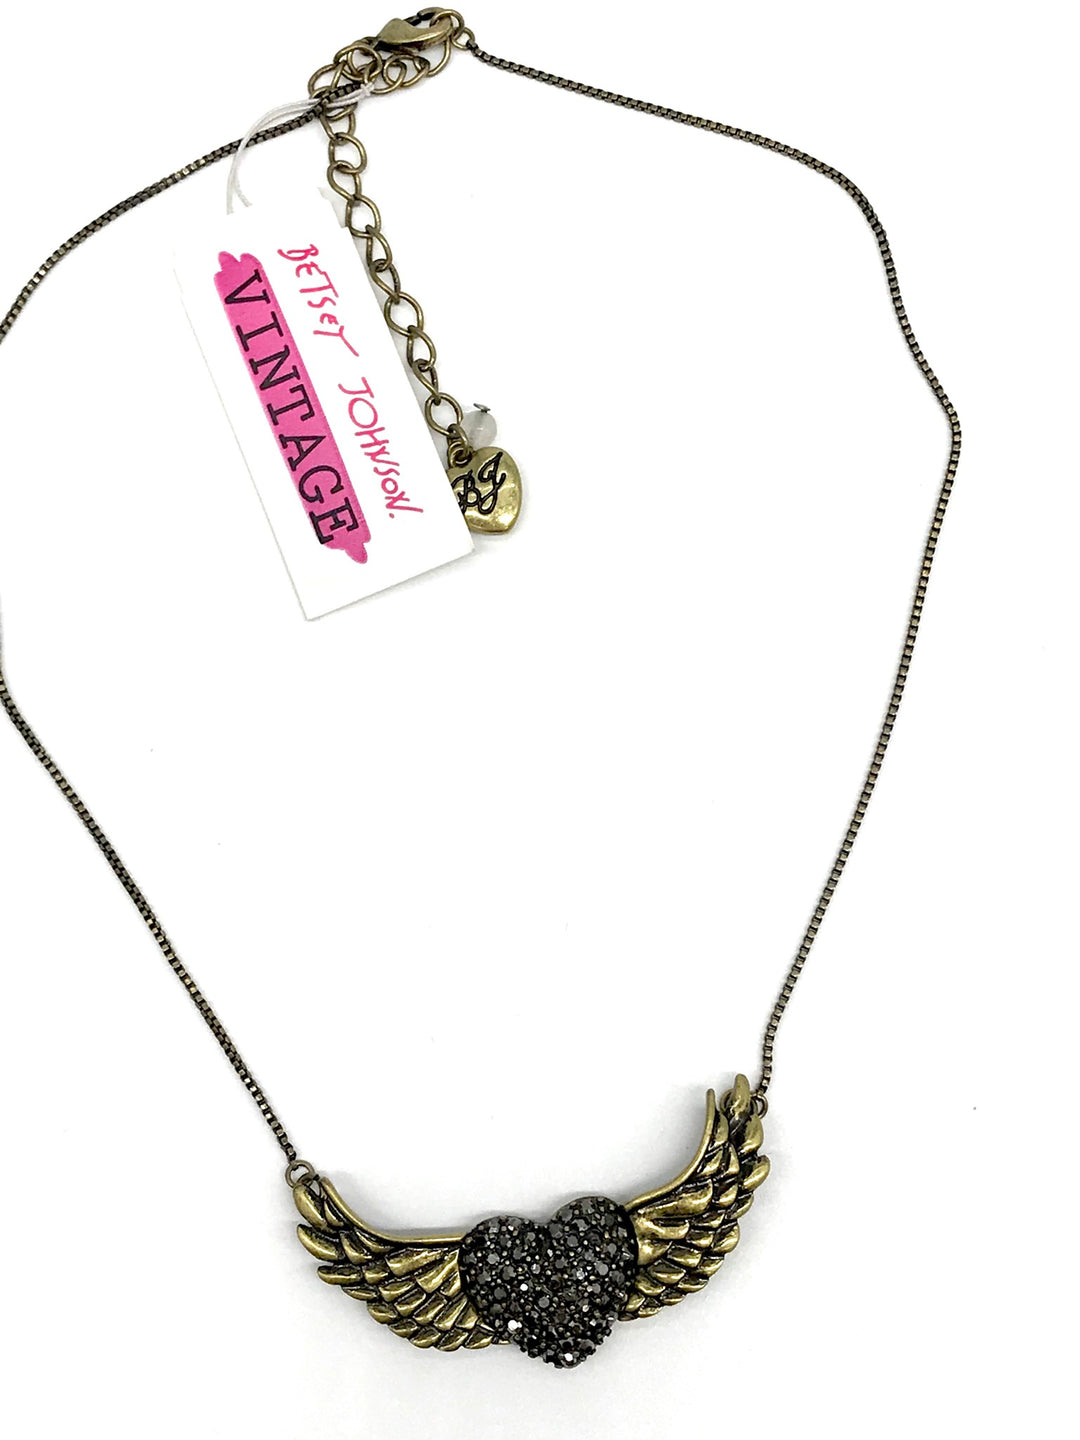 Photo #2 - BRAND: BETSEY JOHNSON <BR>STYLE: NECKLACE <BR>COLOR: HEART <BR>SKU: 262-26211-139430<BR>BRAND NEW CONDITION - AS IS